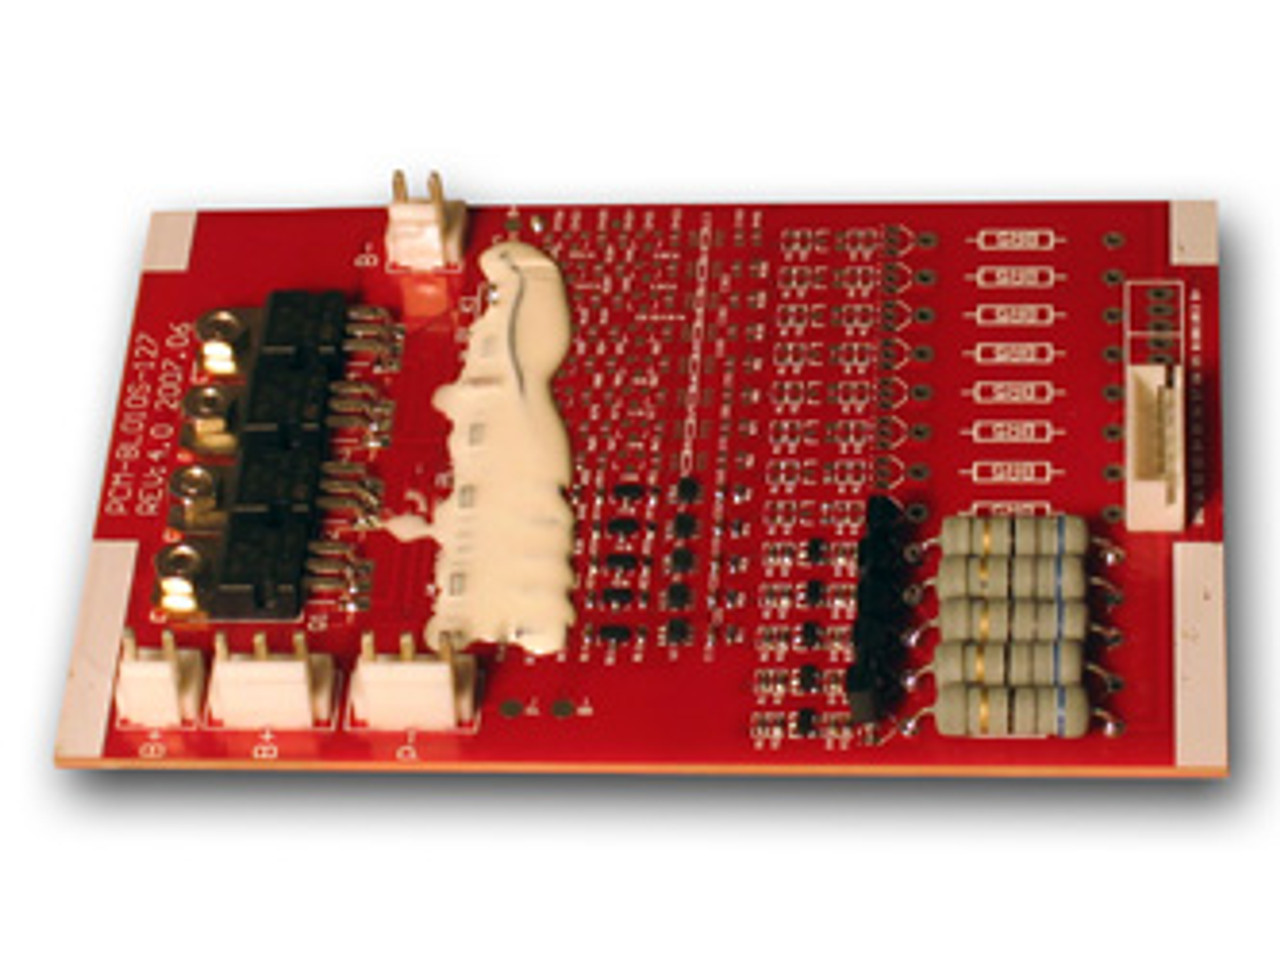 Protection Circuit Module [PCB] for 18.5V (5S) Li-ion Battery Pack (Cutoff 15A)